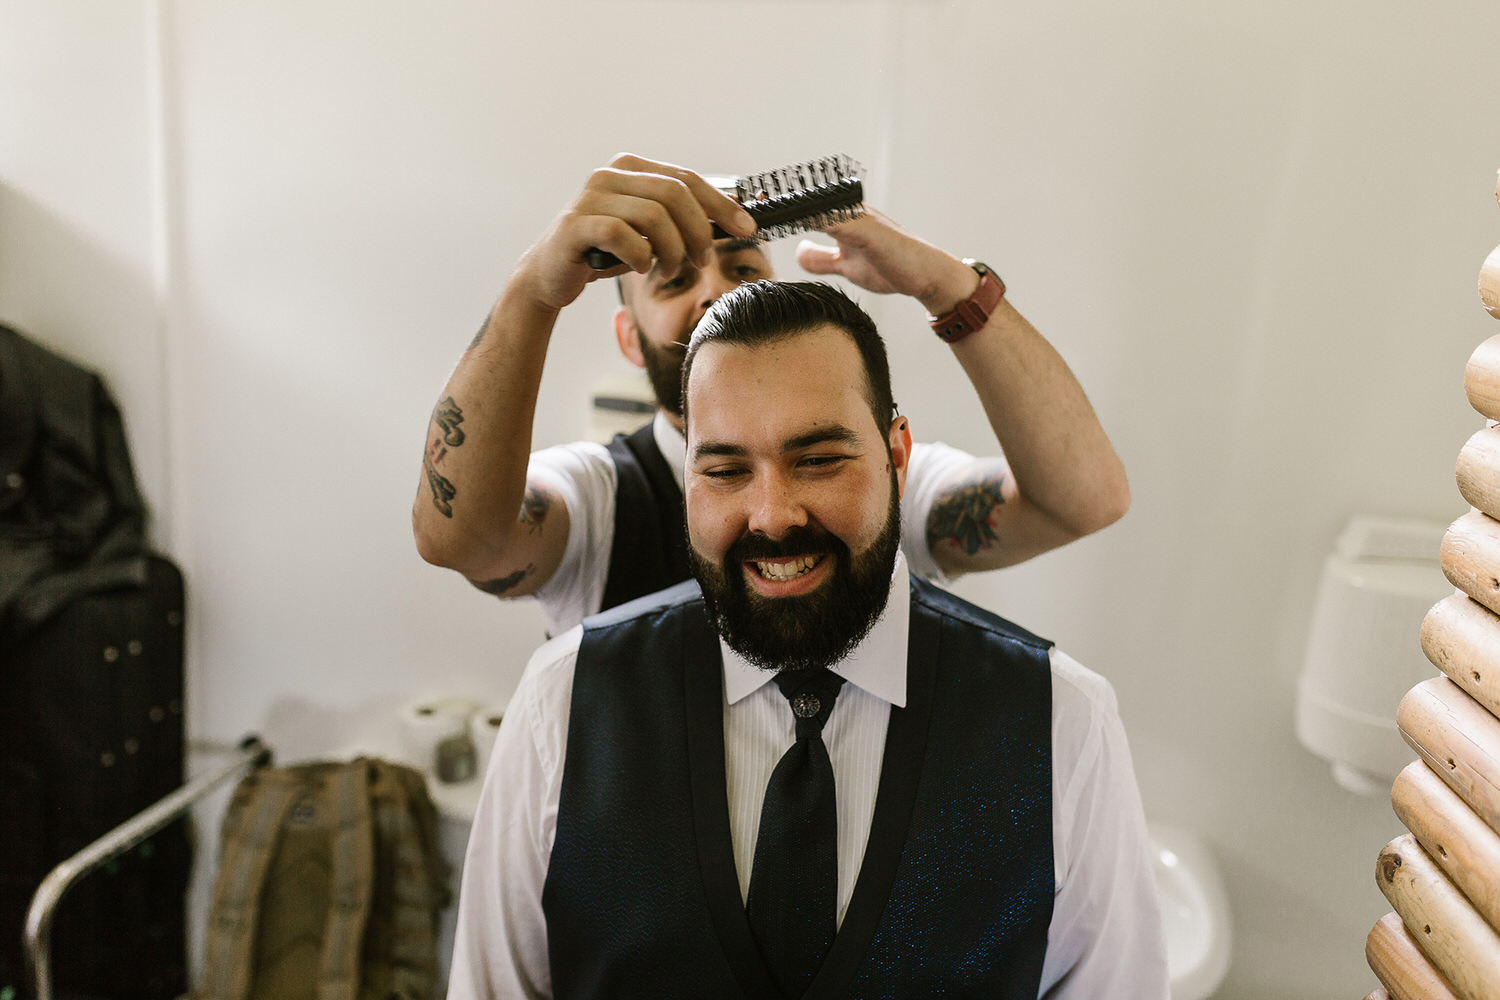 barber getting the groom ready